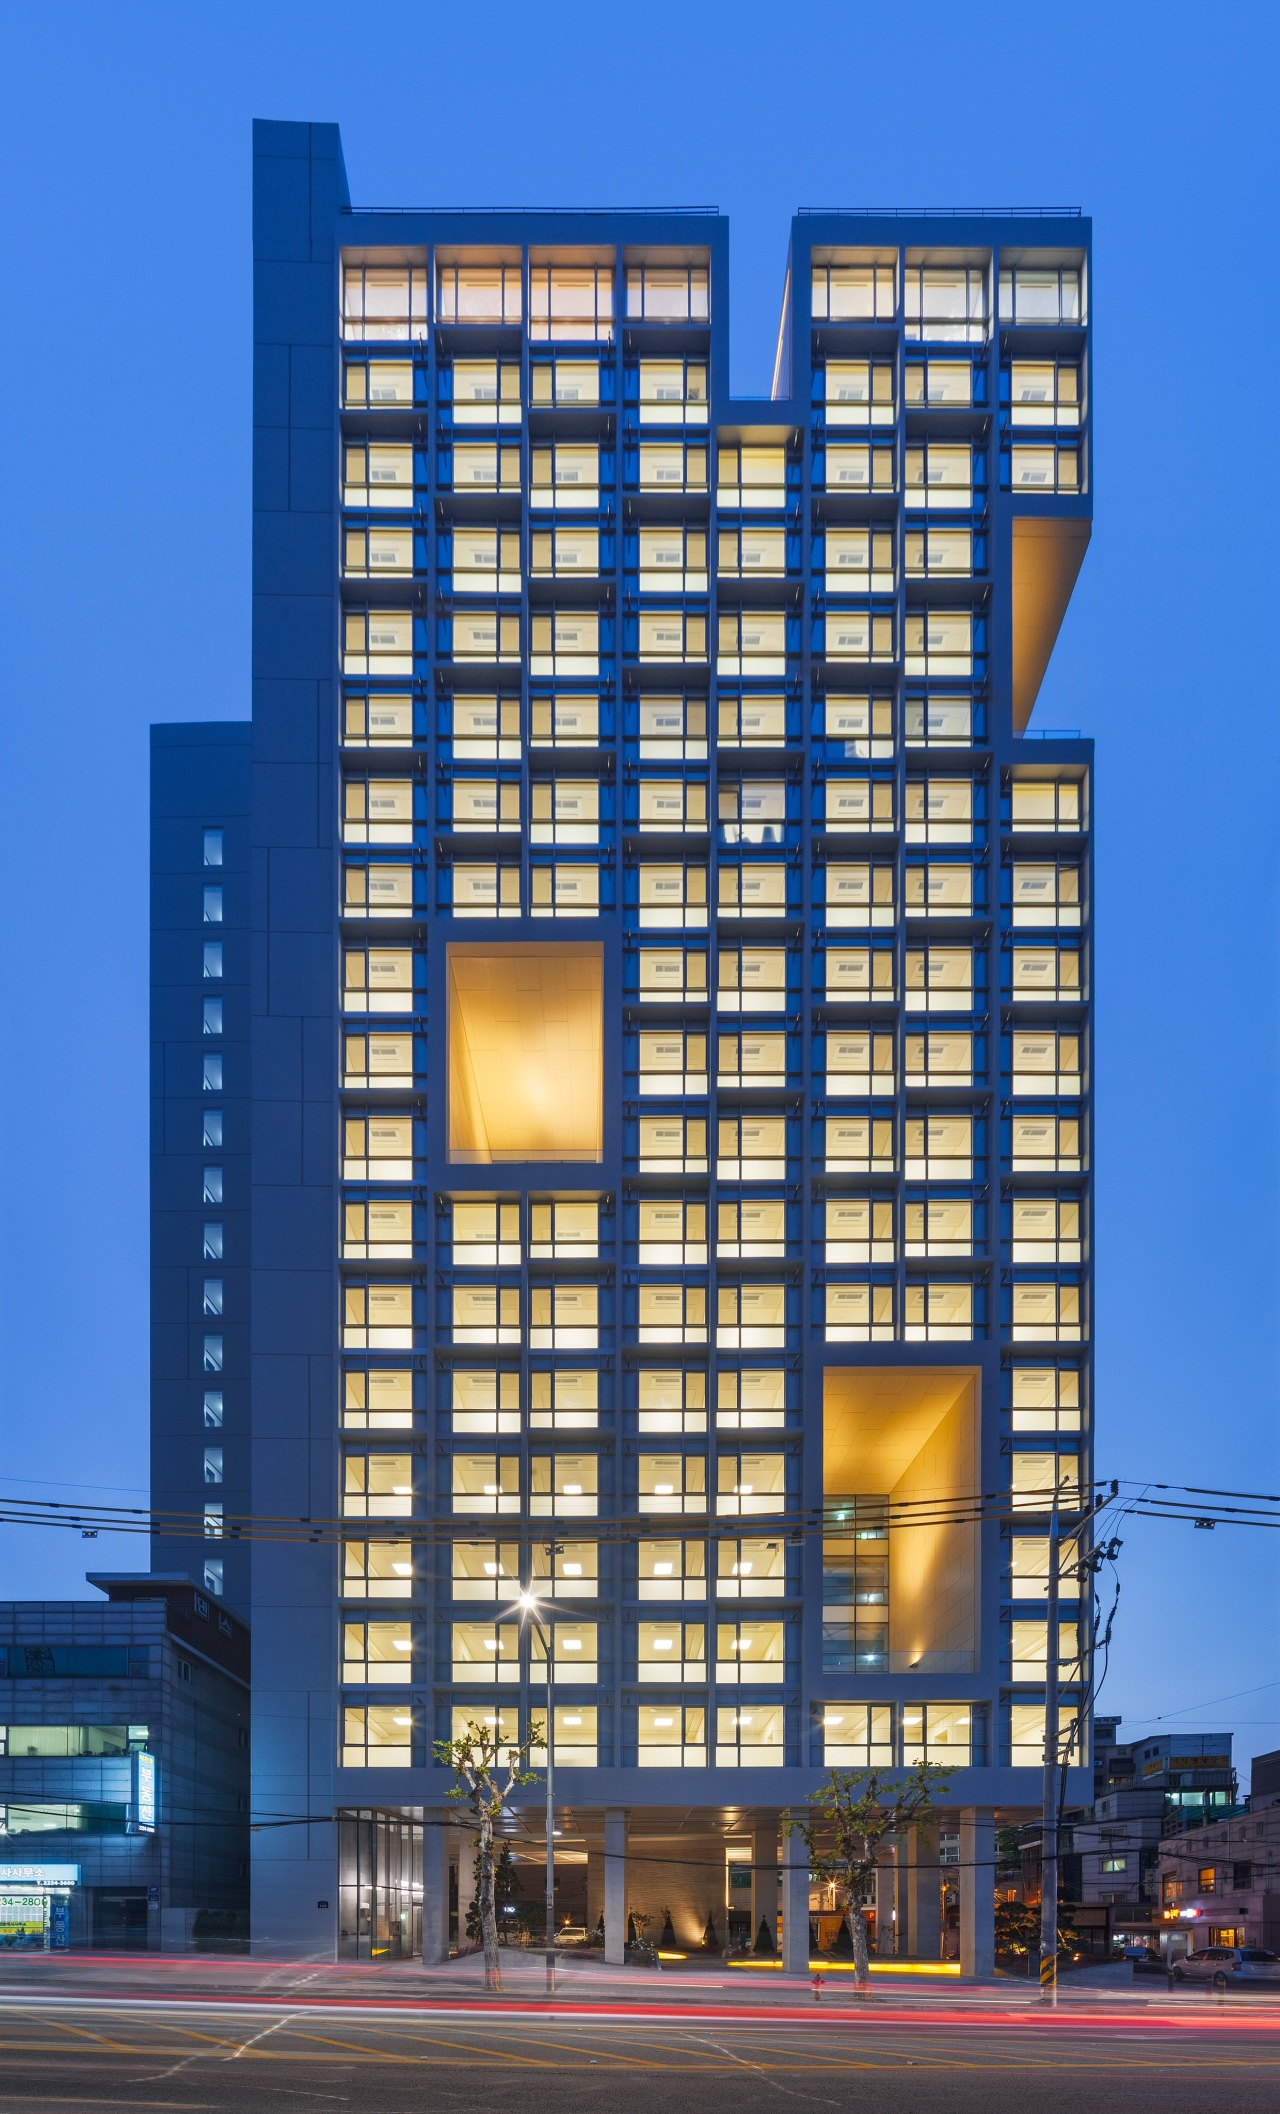 High-rise apartment and retail block Duo302 in Hwanghak-dong, central Seoul (Shin Kyung-sub)